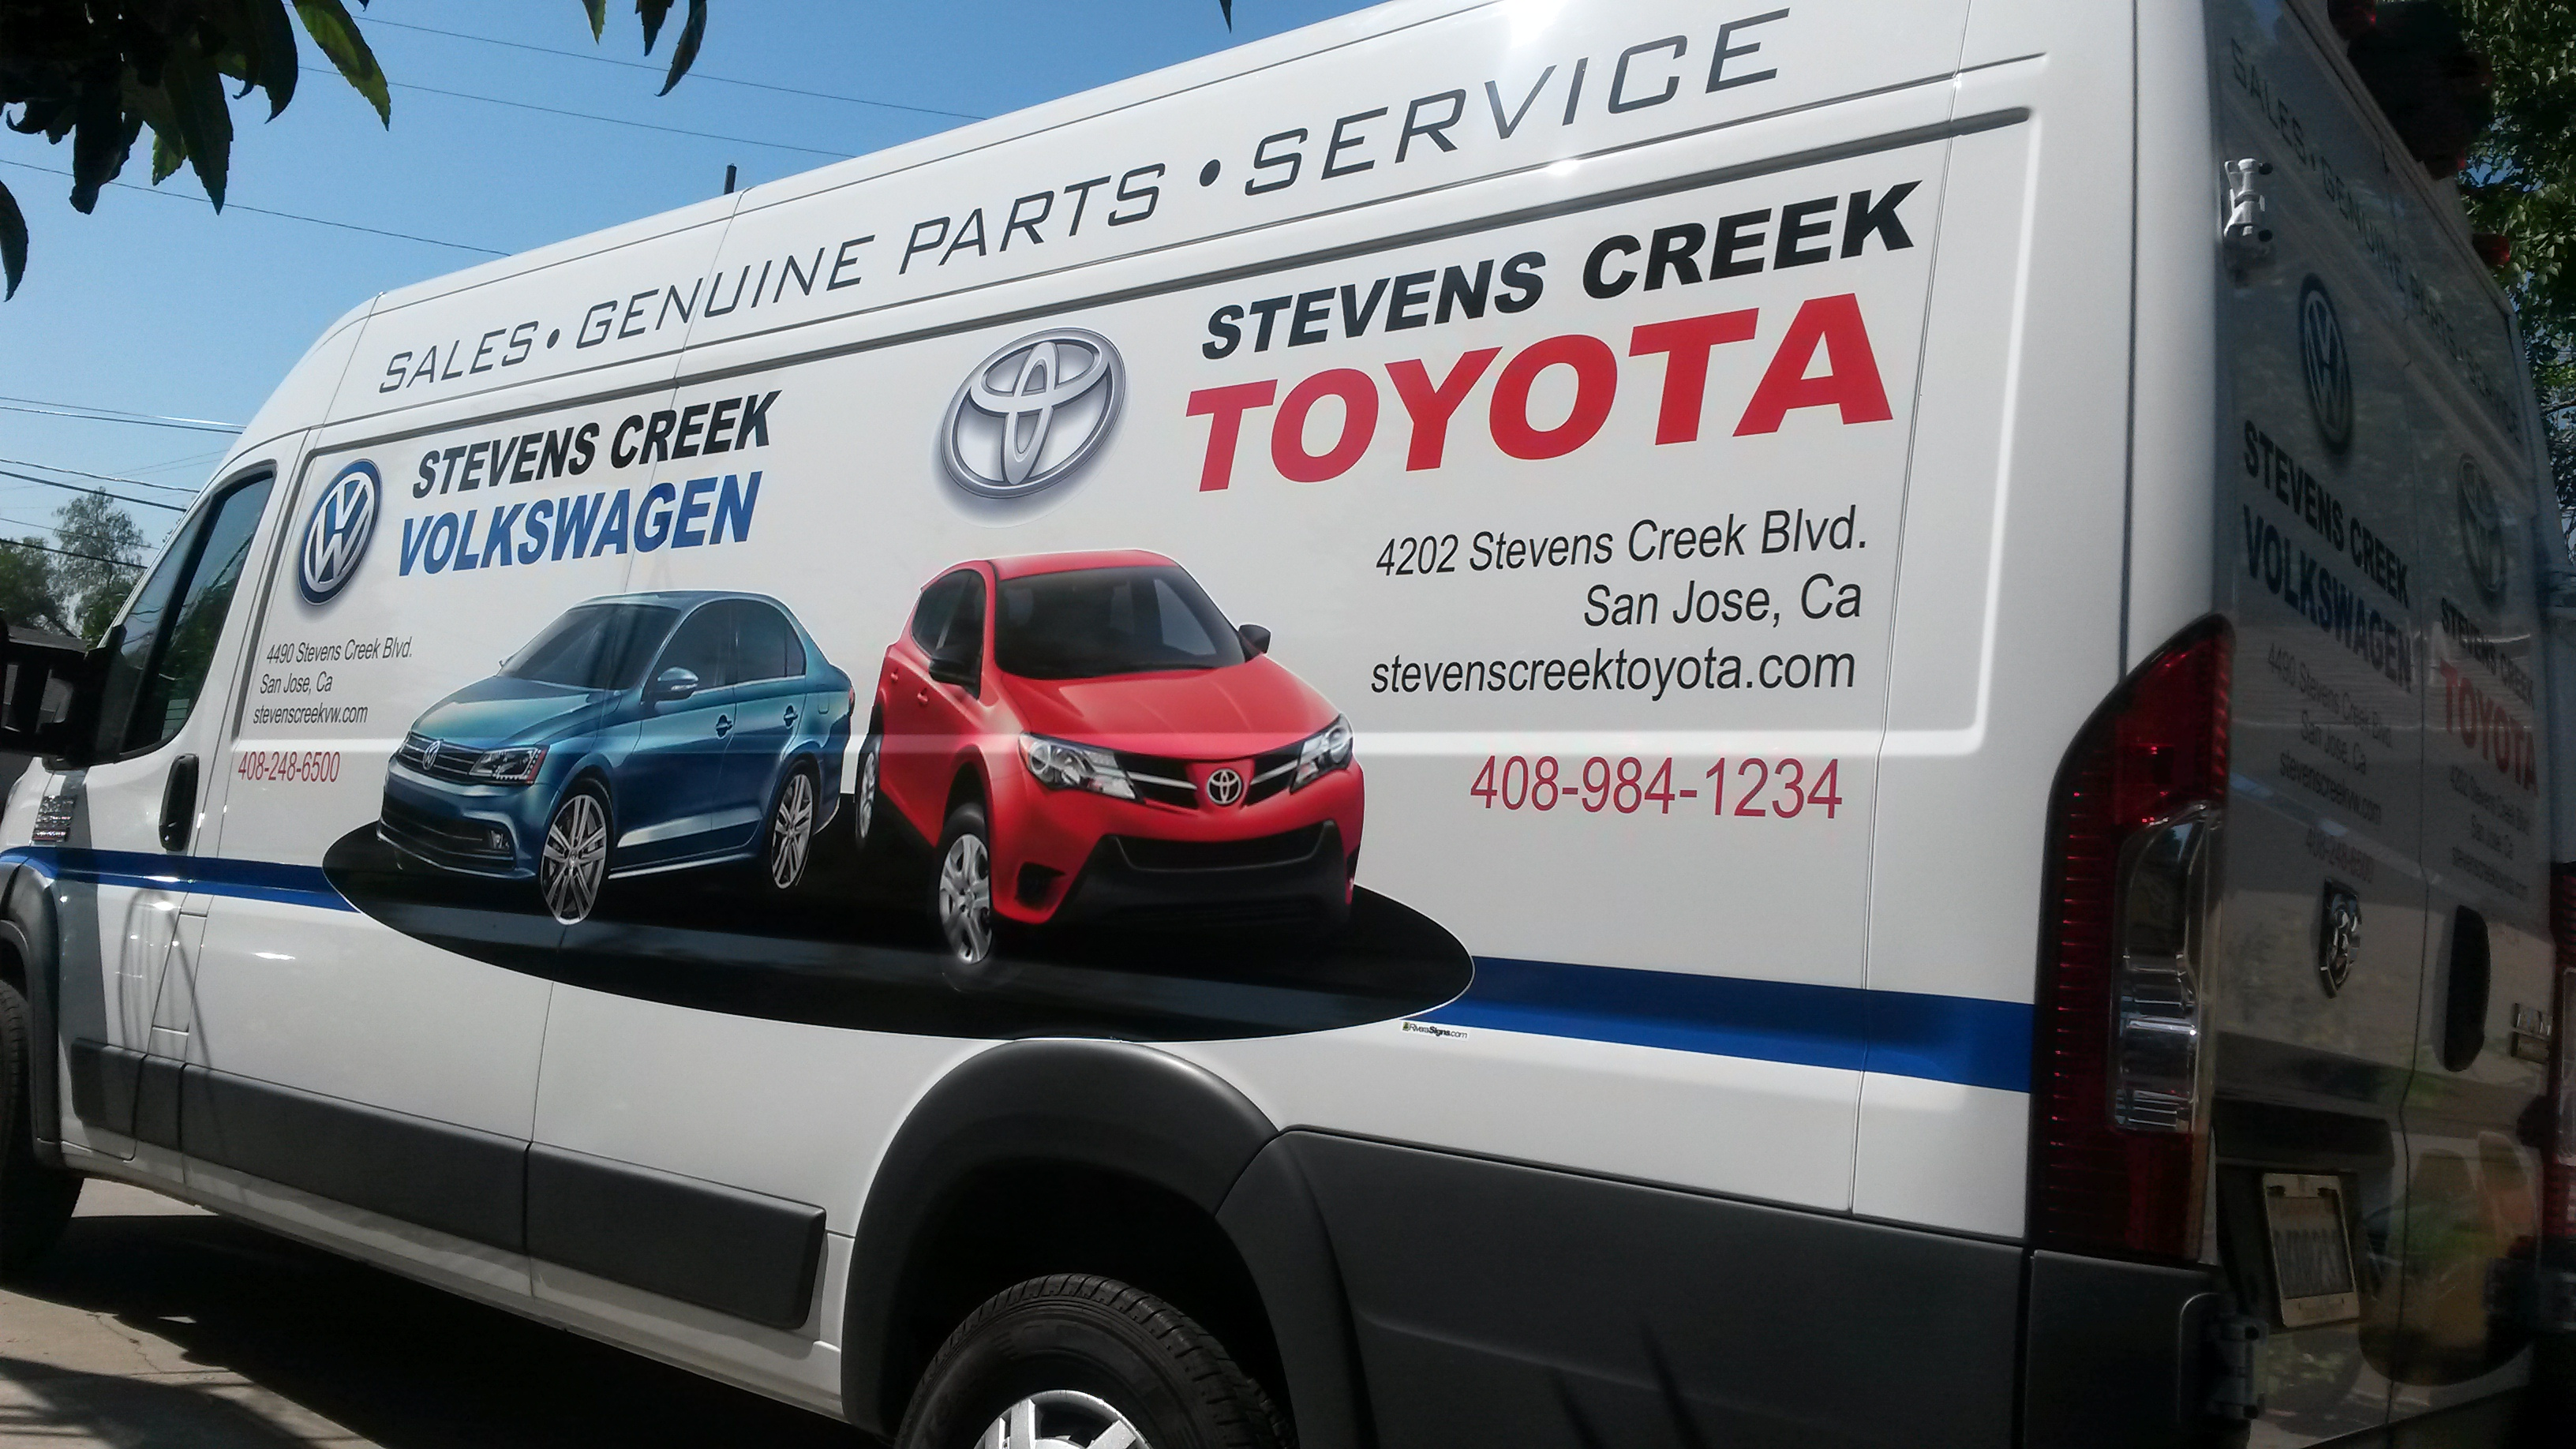 Advertising Combined On Vans Displaying Stevens Creek Volkswagen And